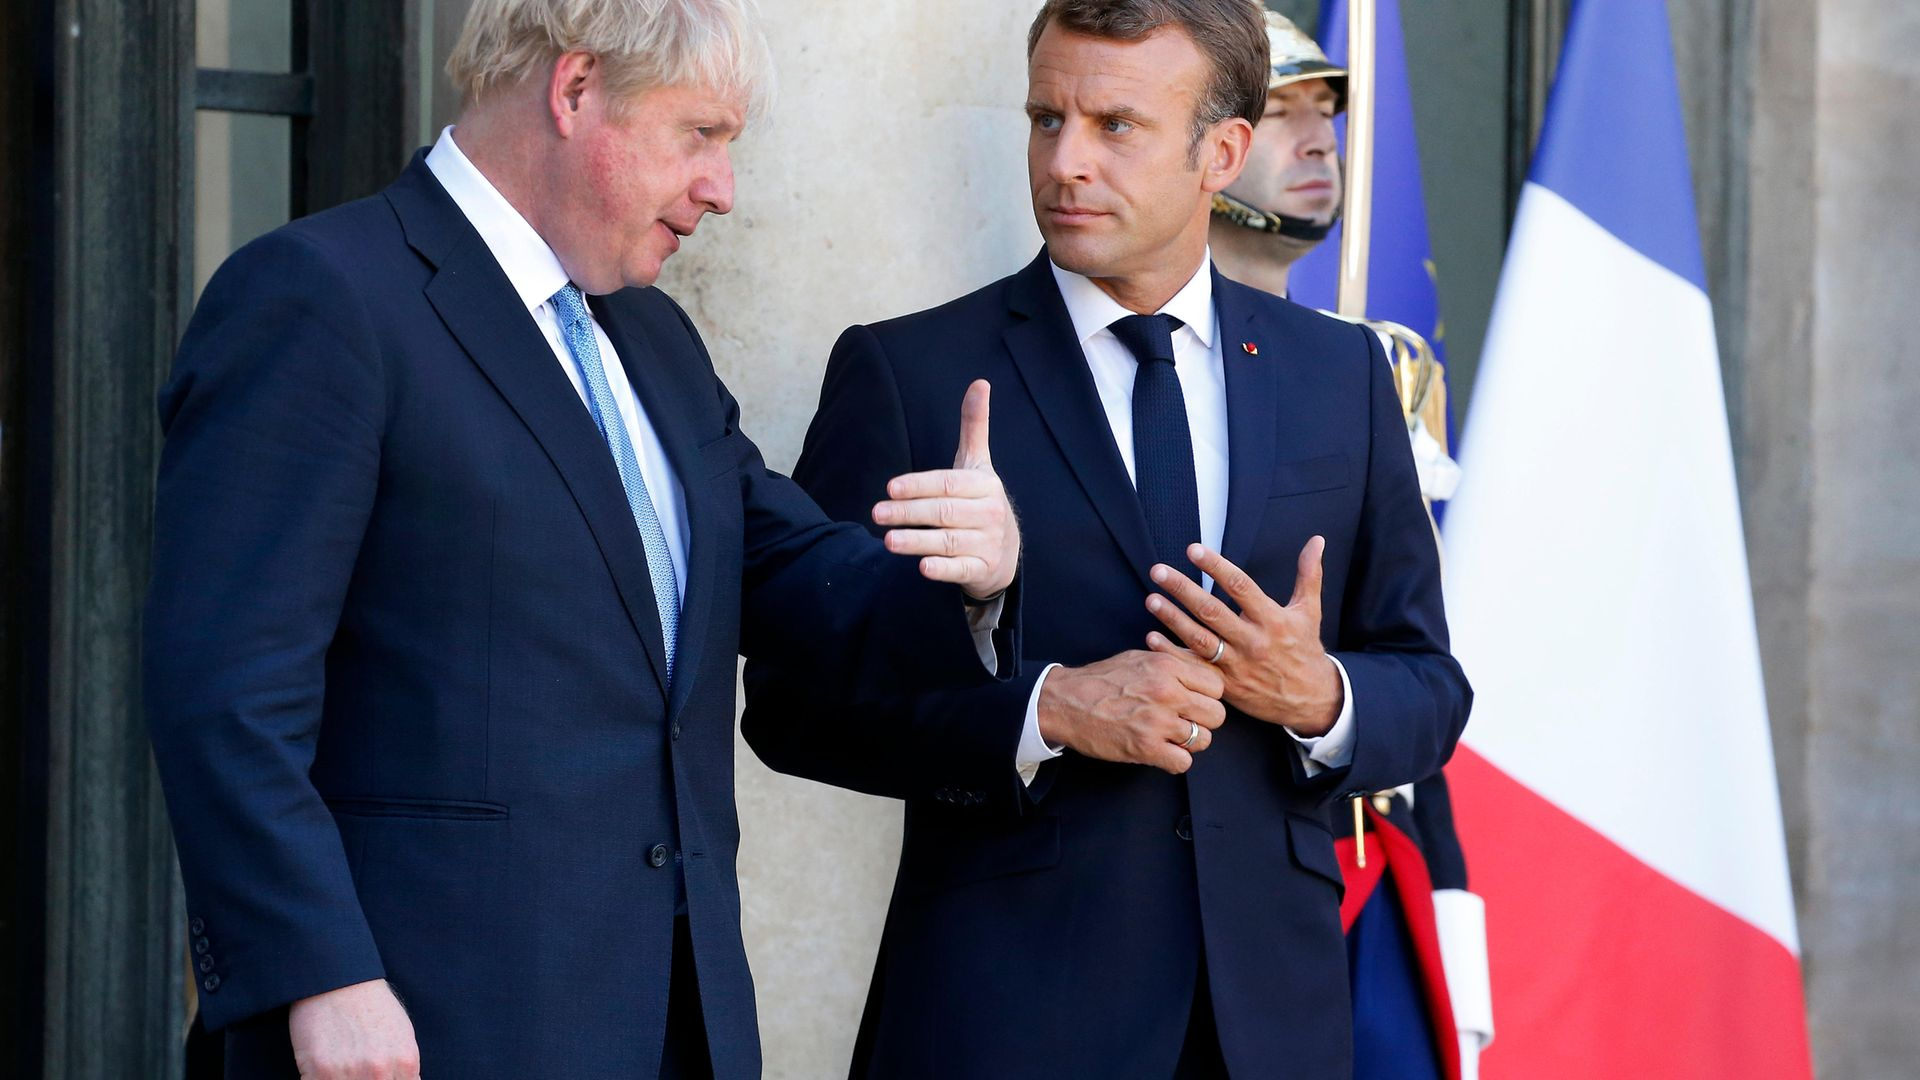 French president Emmanuel Macron accompanies British prime minister Boris Johnson at the Elysee Presidential Palace on August 22, 2019 in Paris - Credit: Photo by Chesnot/Getty Images